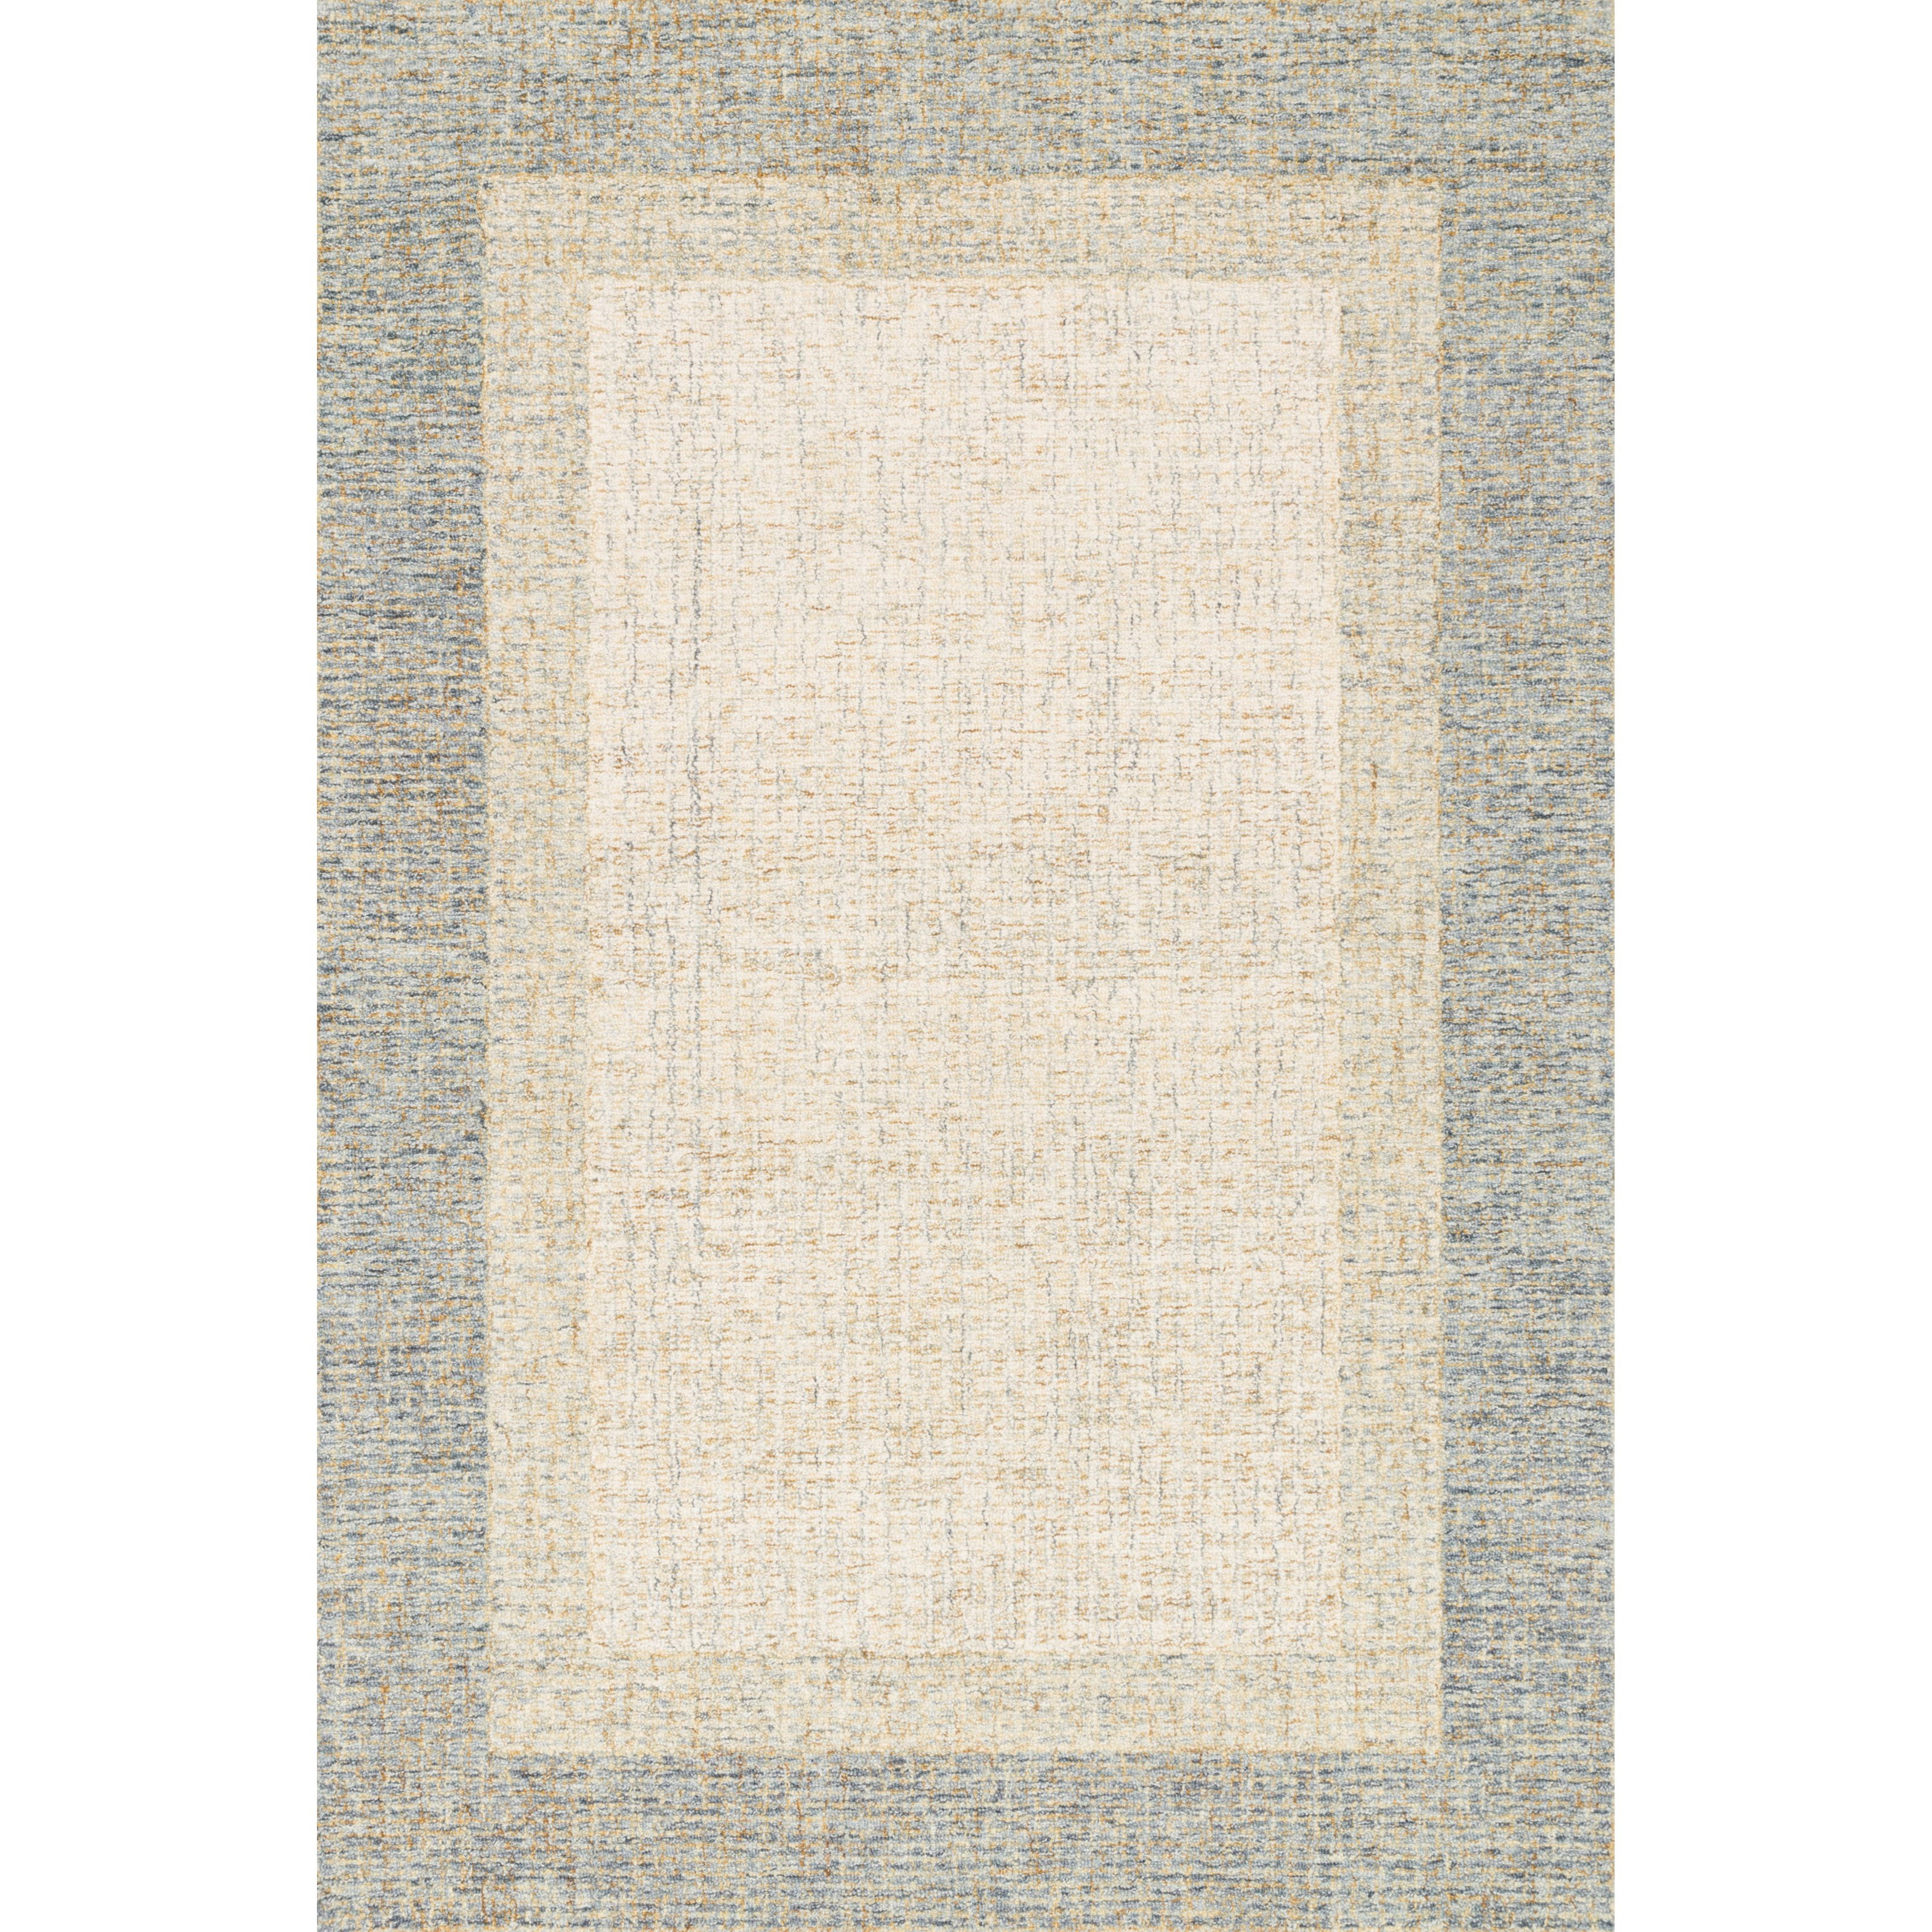 """Rosina 2'3"""" x 3'9"""" Sand Rug by Loloi Rugs at Virginia Furniture Market"""